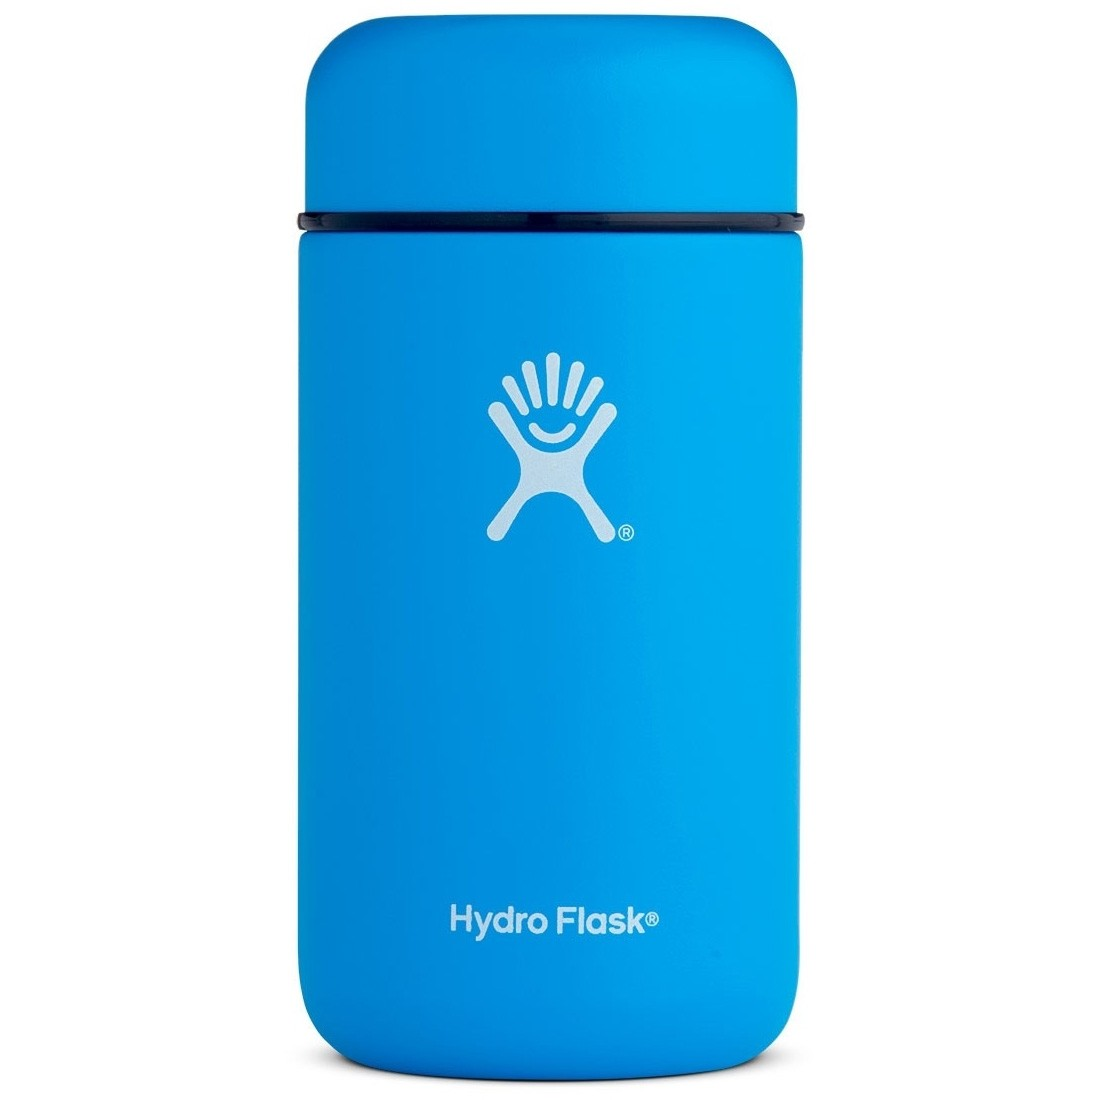 Hydro Flask 18oz Insulated Food Flask - Pacific